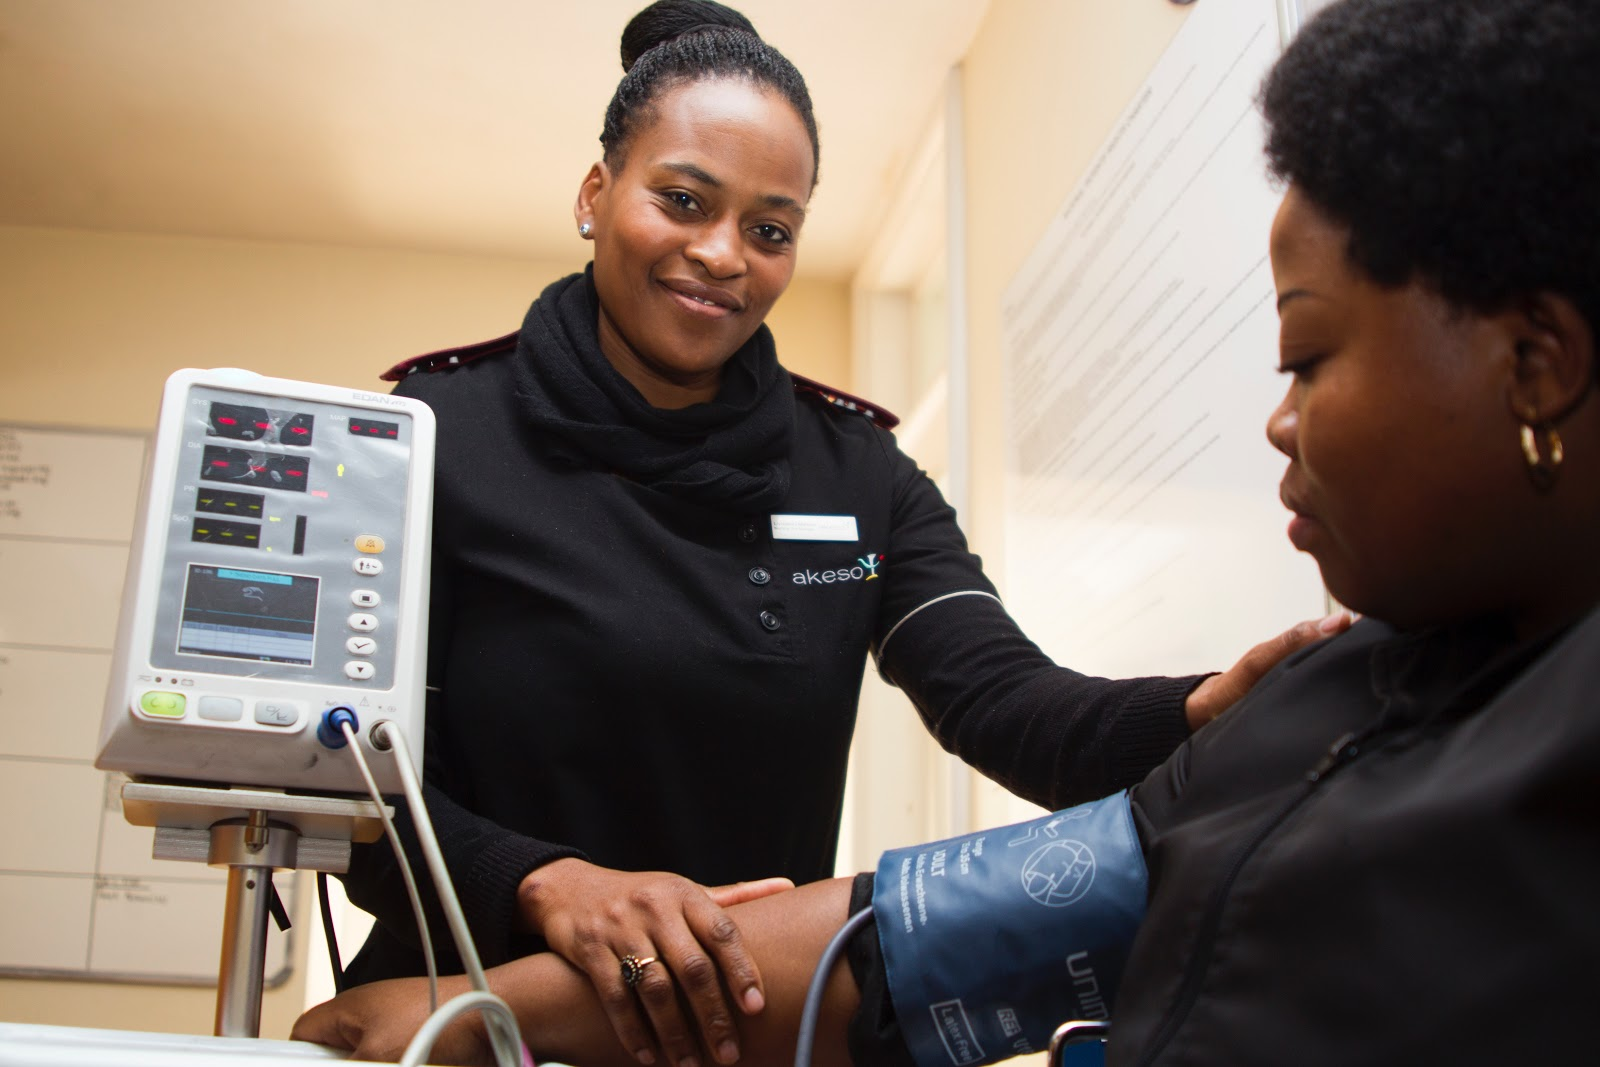 a technician smiles as she takes a patient's blood pressure